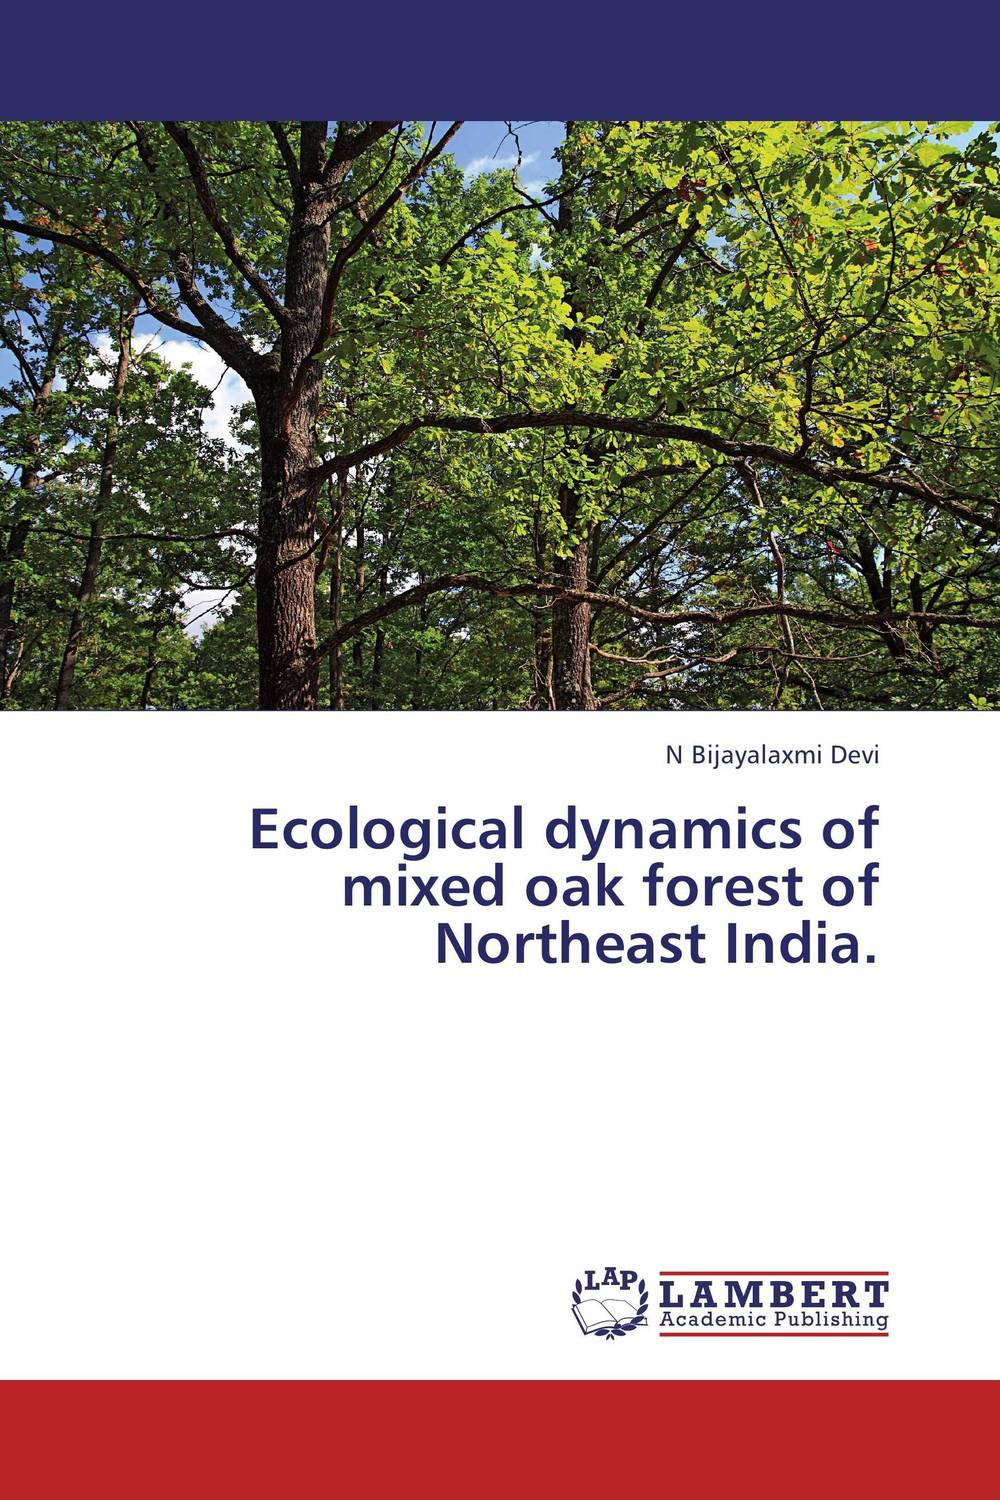 Ecological dynamics of mixed oak forest of Northeast India